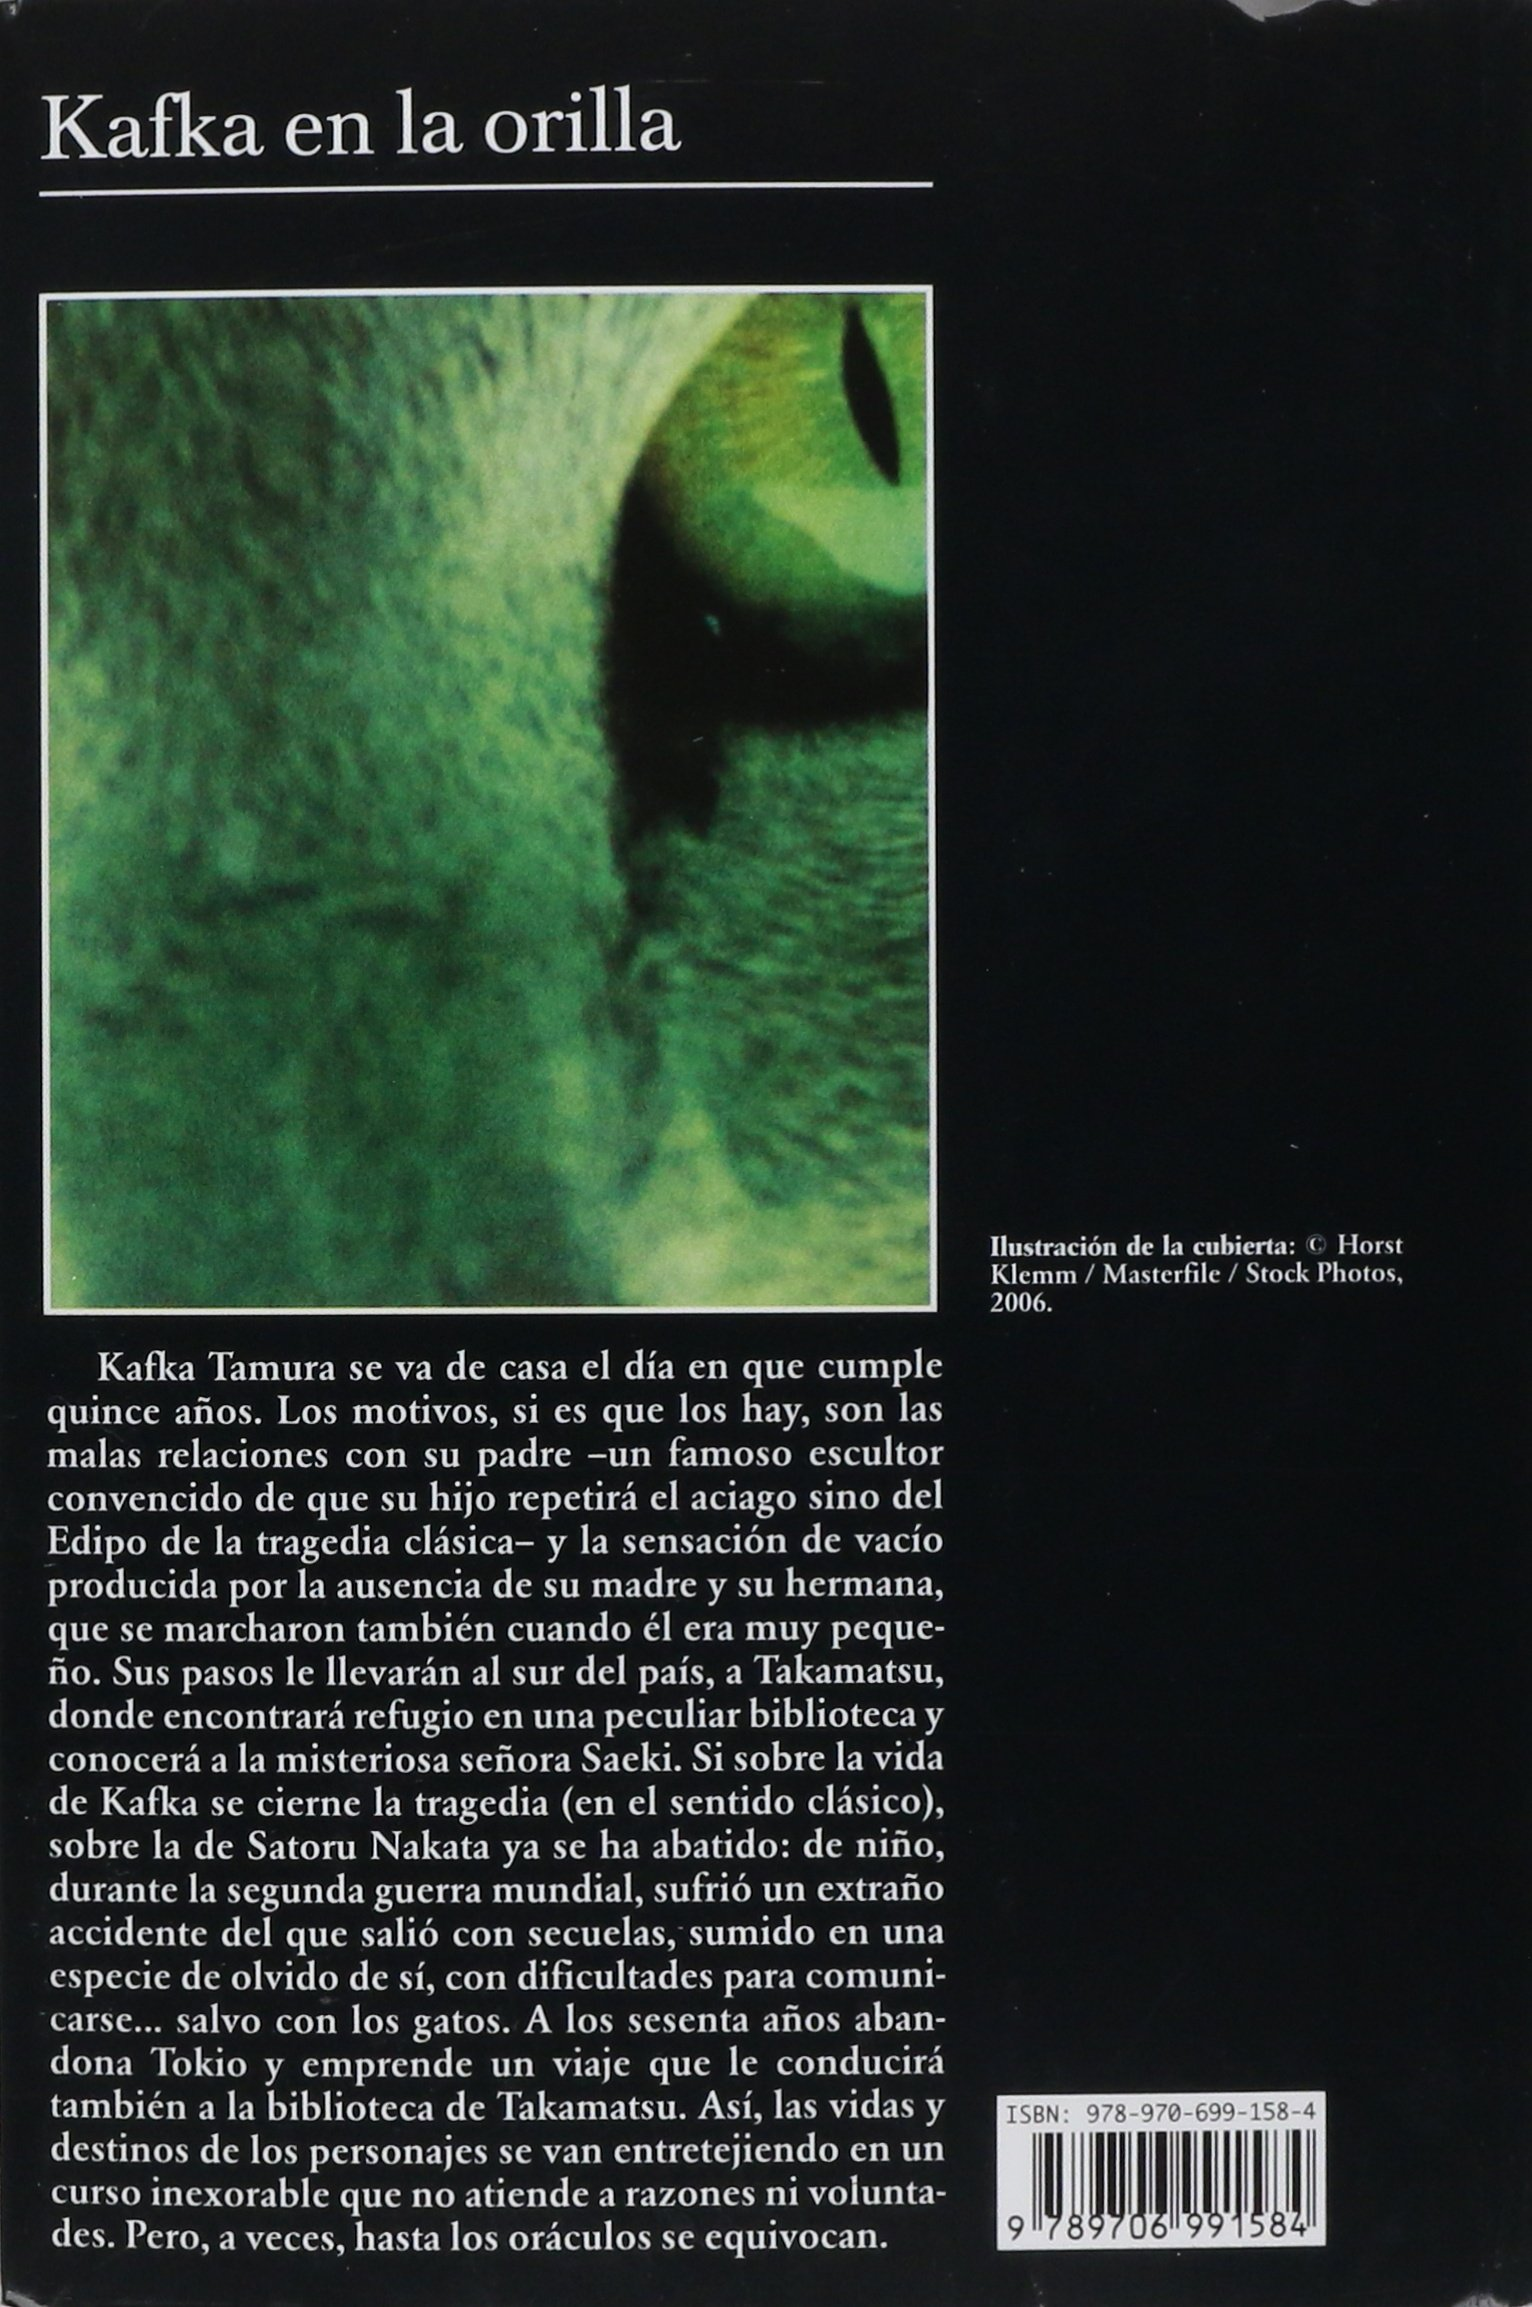 Kafka en la orilla (Spanish Edition): Haruki Murakami: 9789706991584: Amazon.com: Books